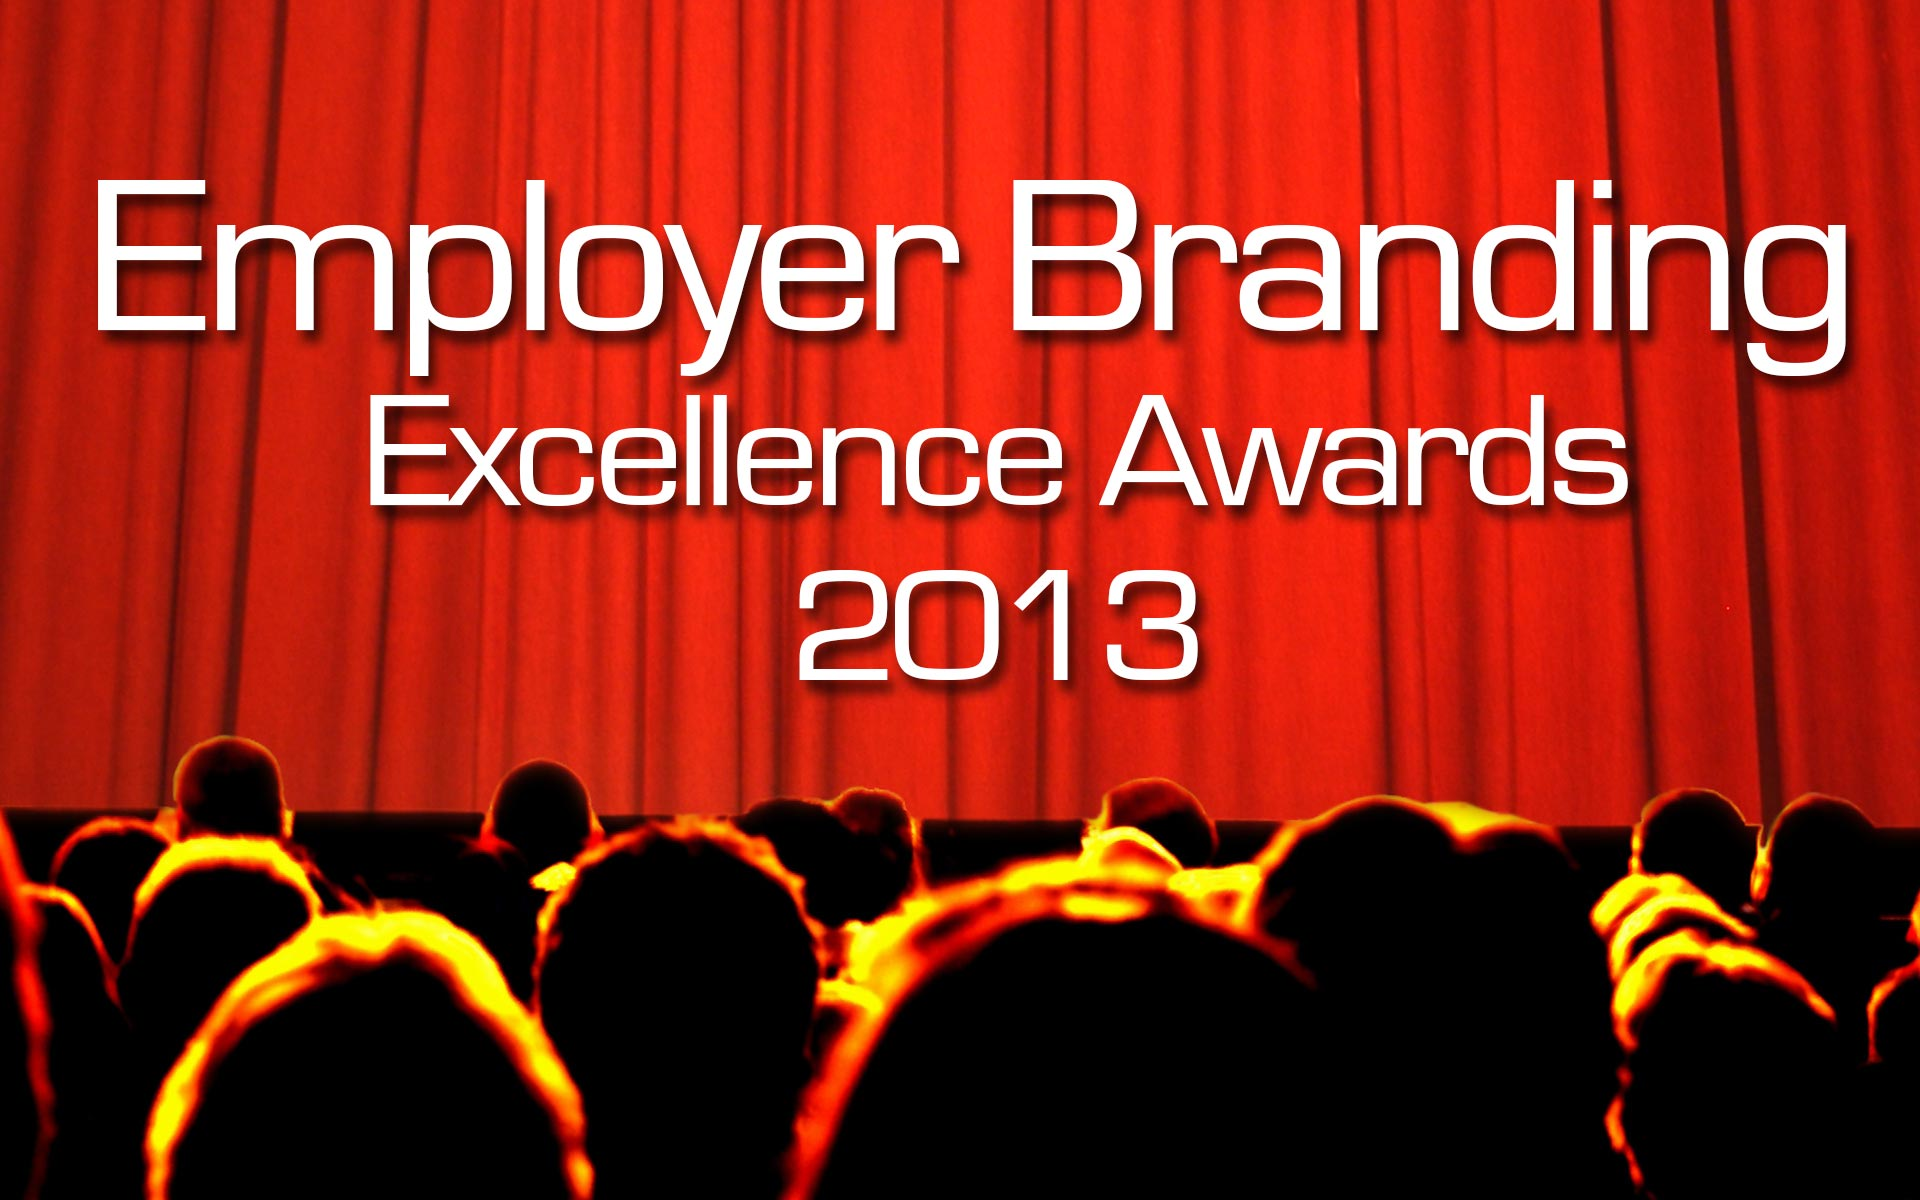 Employer Branding Excellence Awards 2013